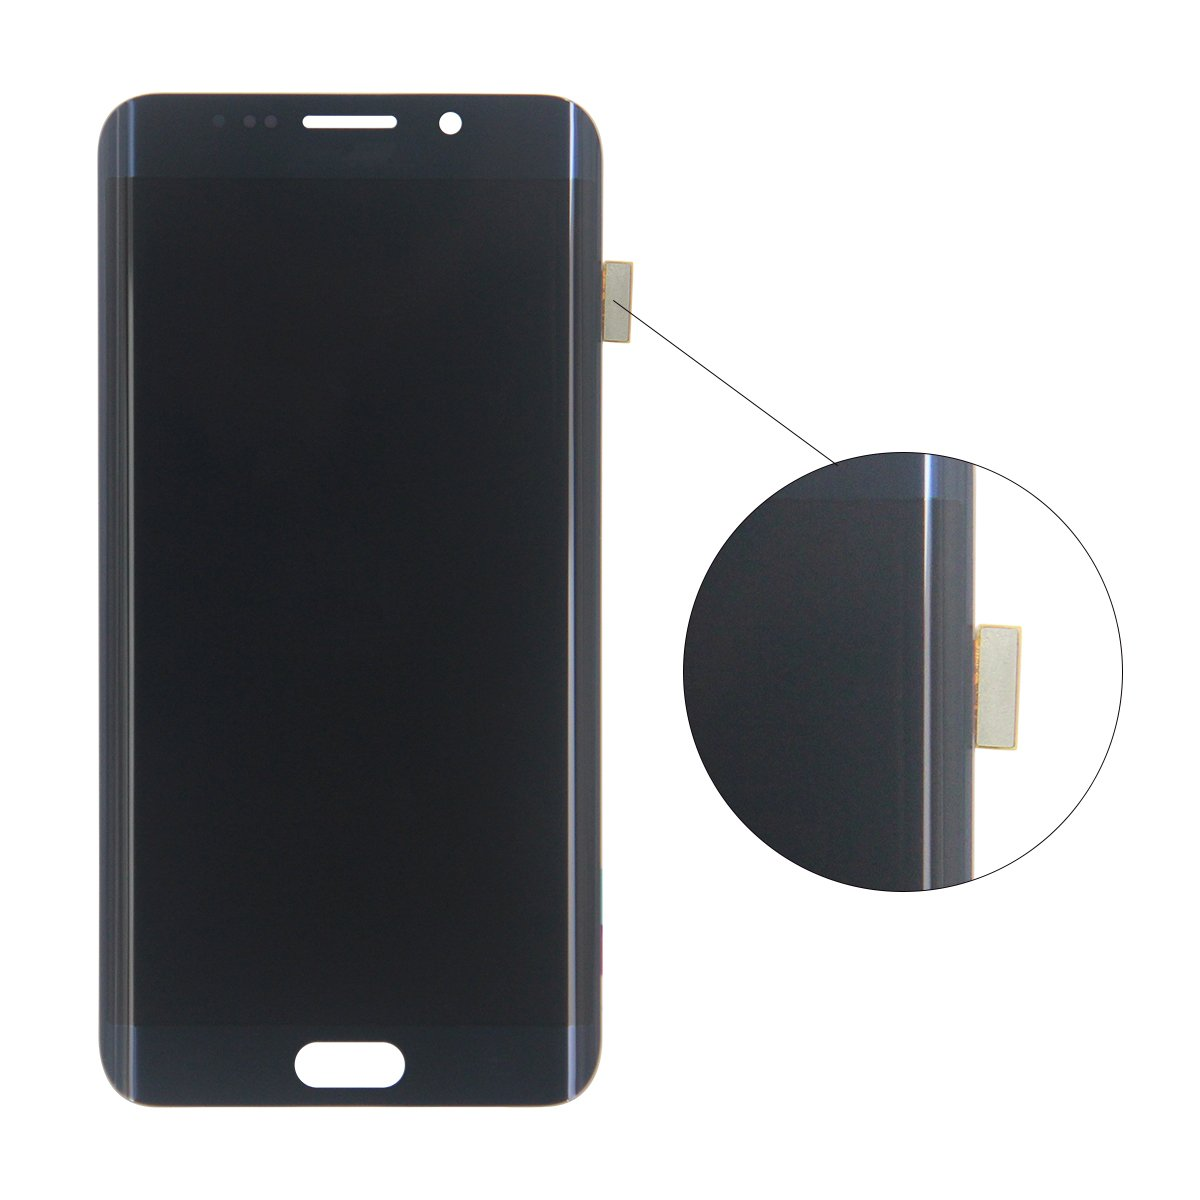 HJSDtech LCD Display Screen Touch Screen Digitizer Assembly Replacement for Samsung Galaxy S6 Edge Plus G928T G928P G928V G928C (Black) by HJSDtech (Image #2)